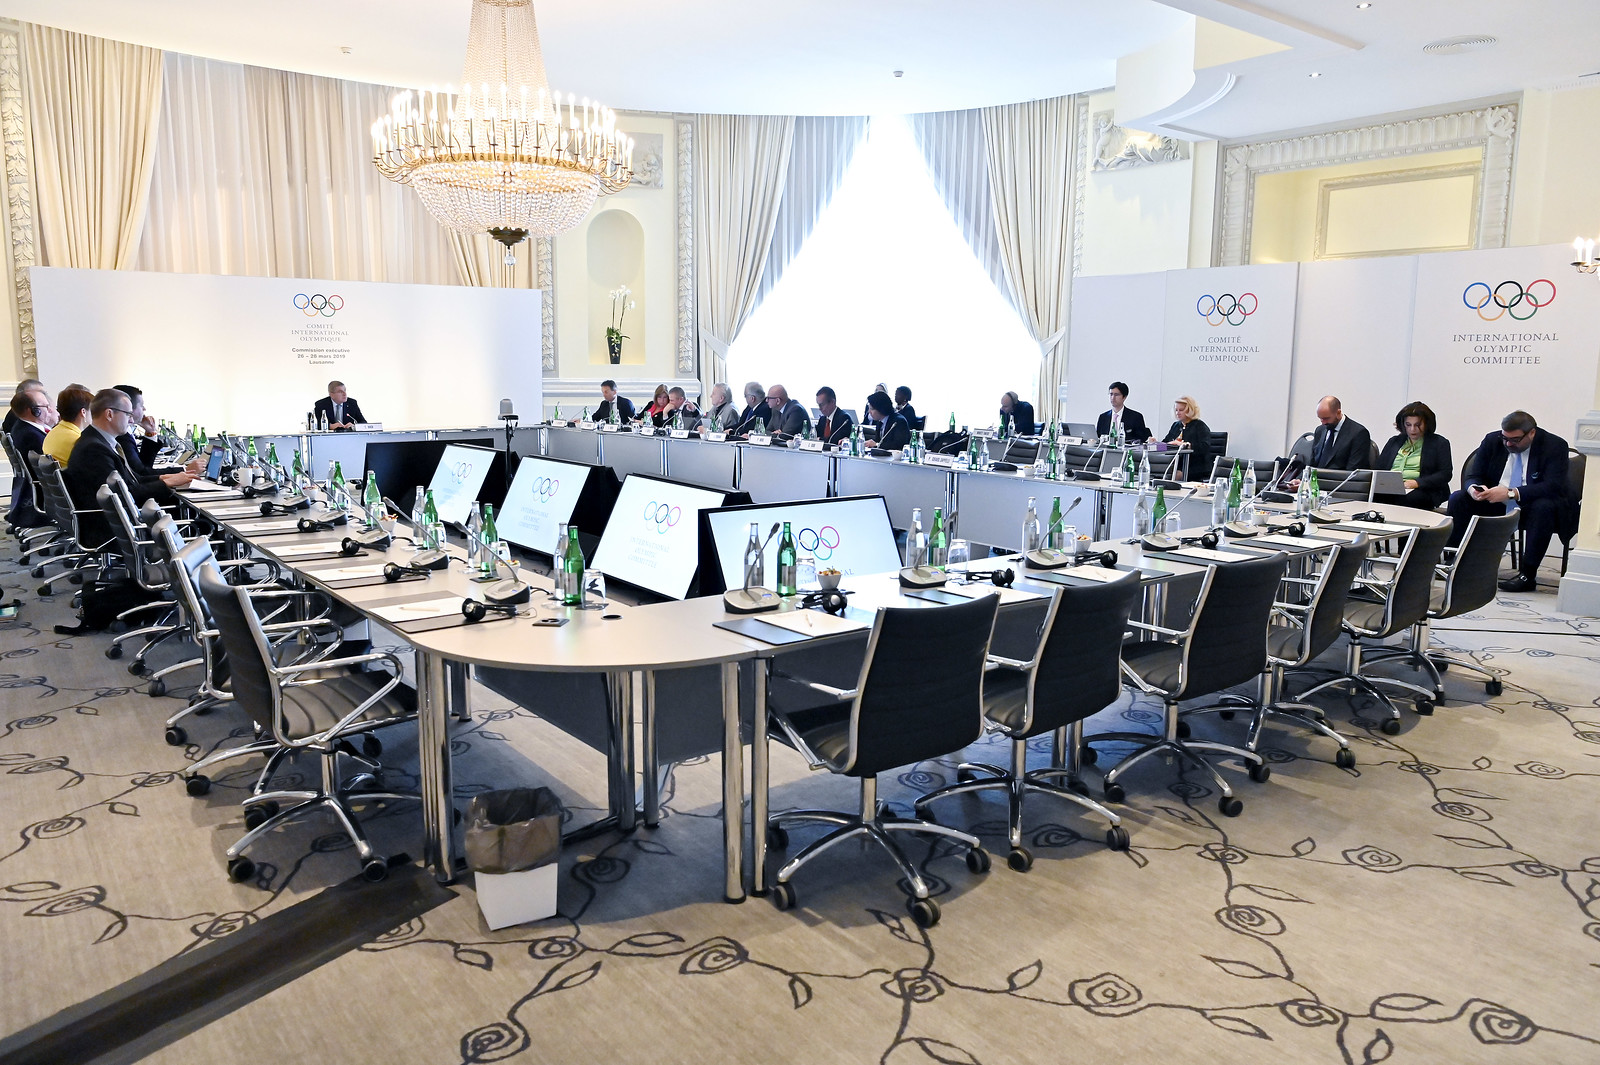 Lausanne | Switzerland, IOC Executive Board in Lausanne Palace, 2019